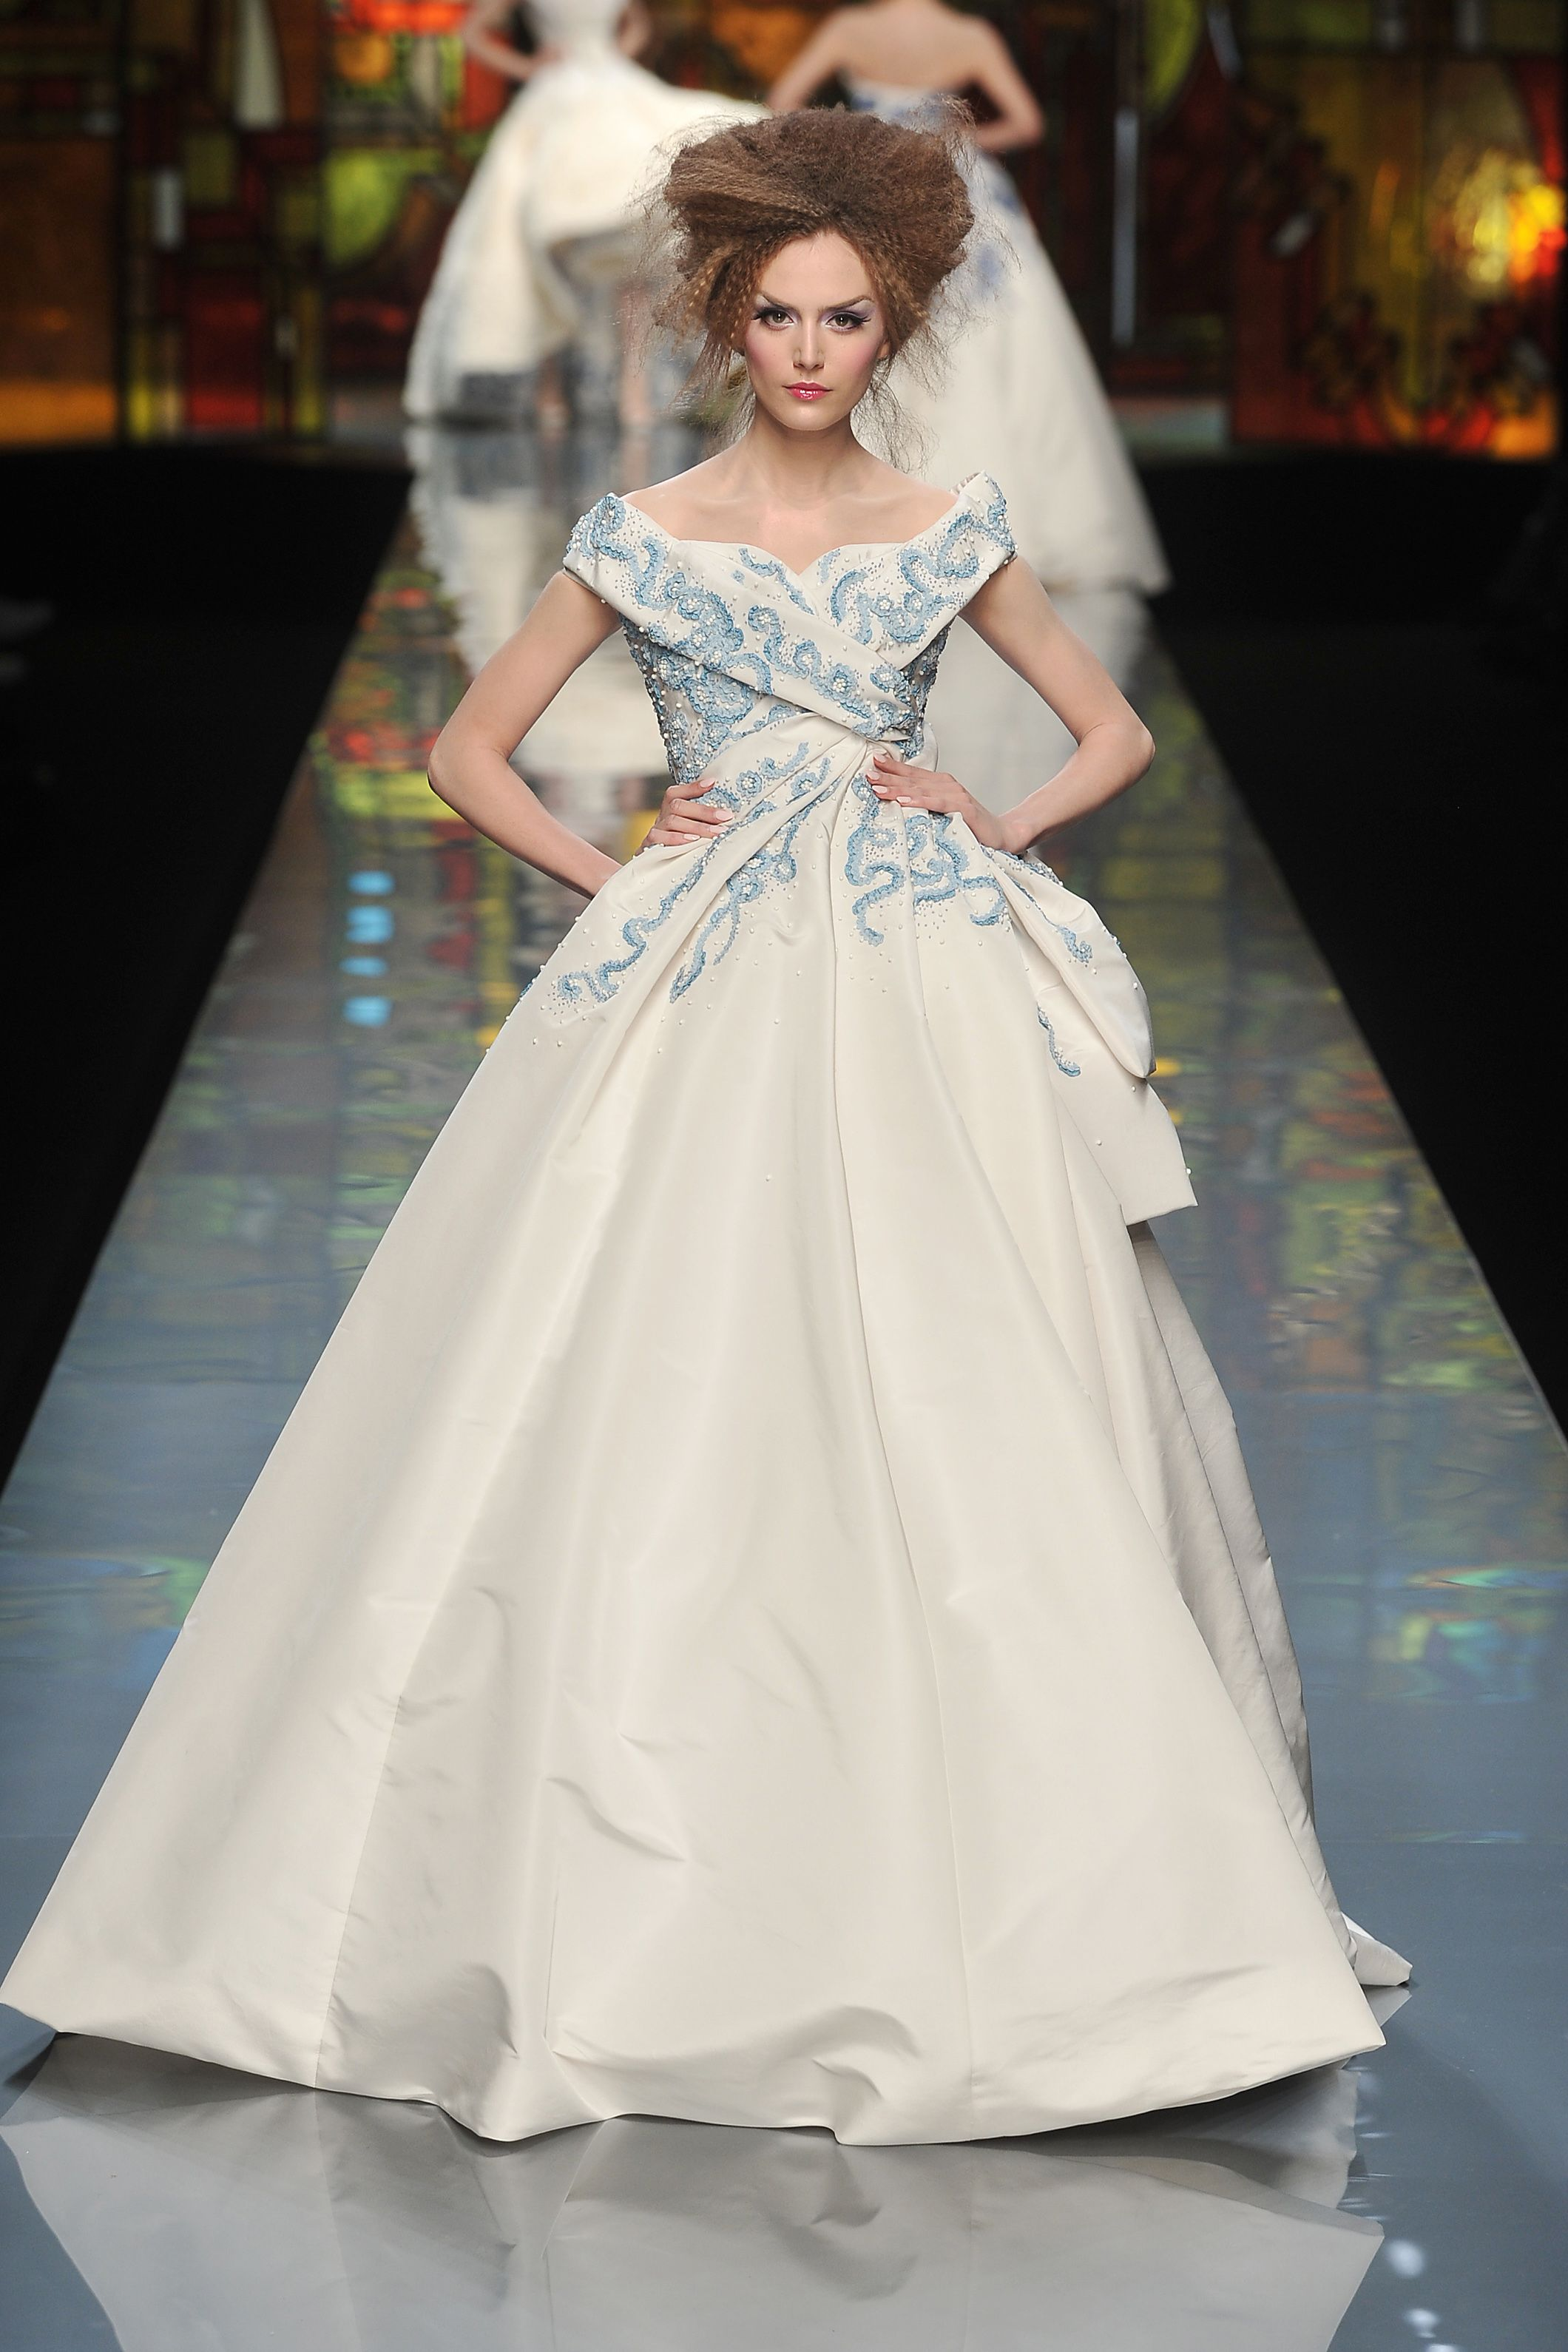 Contemporary Christian Dior Bridal Gowns Ensign - Colorful Wedding ...